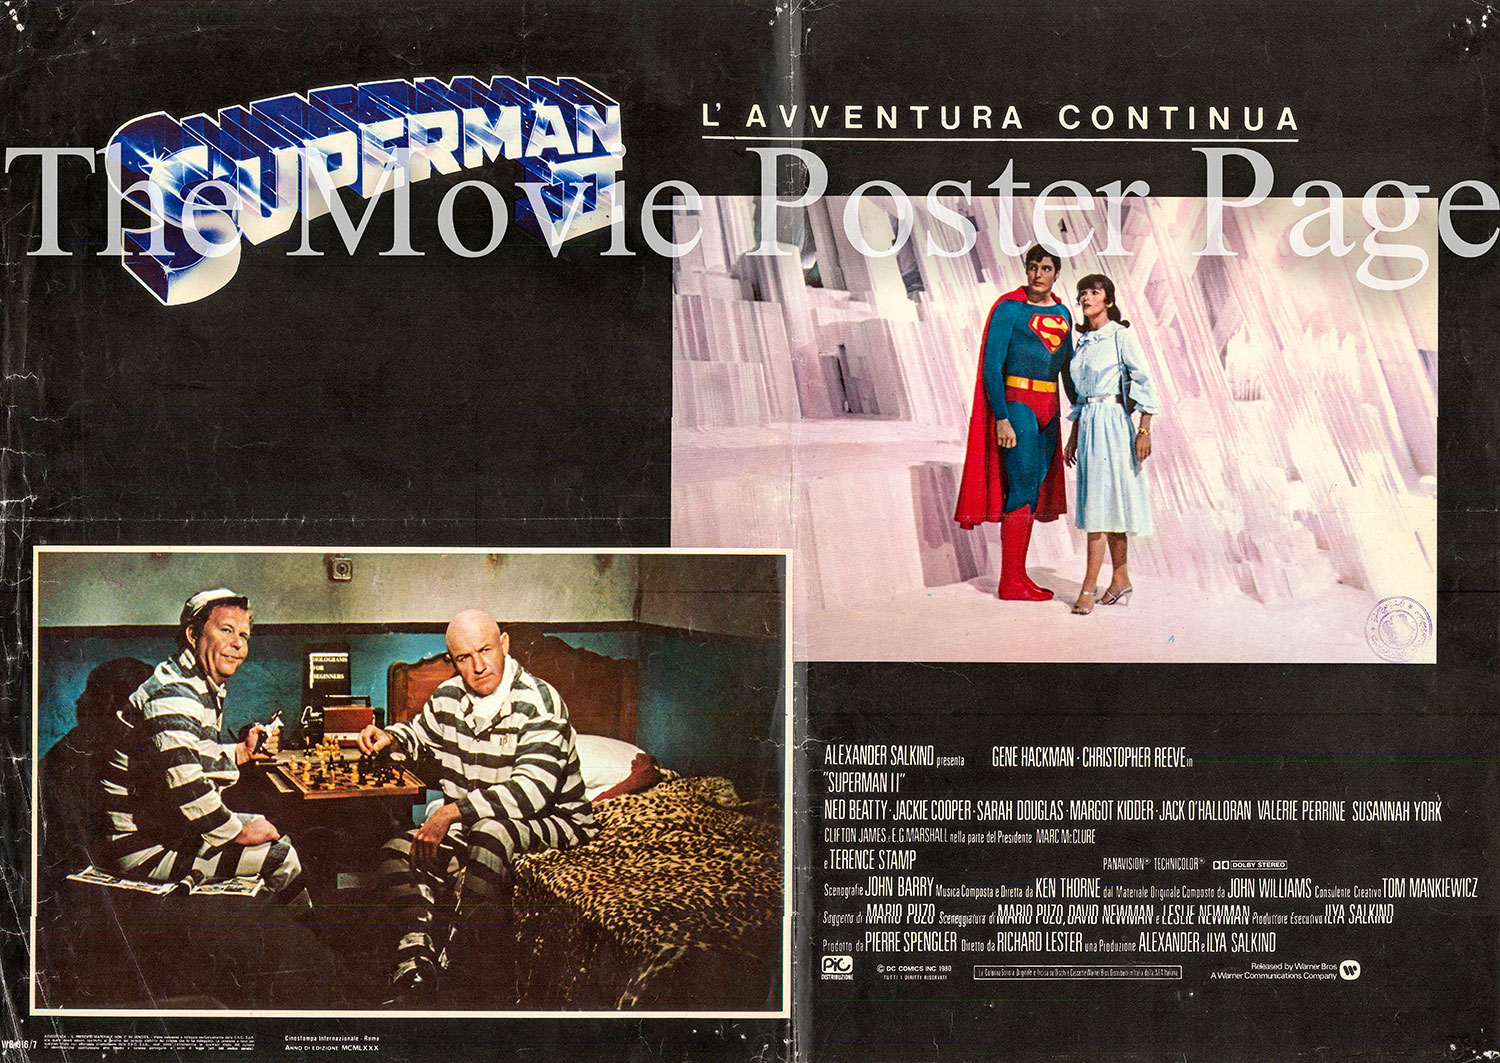 Pictured is an Italian promotional poster for the 1981 Richard Lester film Superman II starring Christopher Reeve.